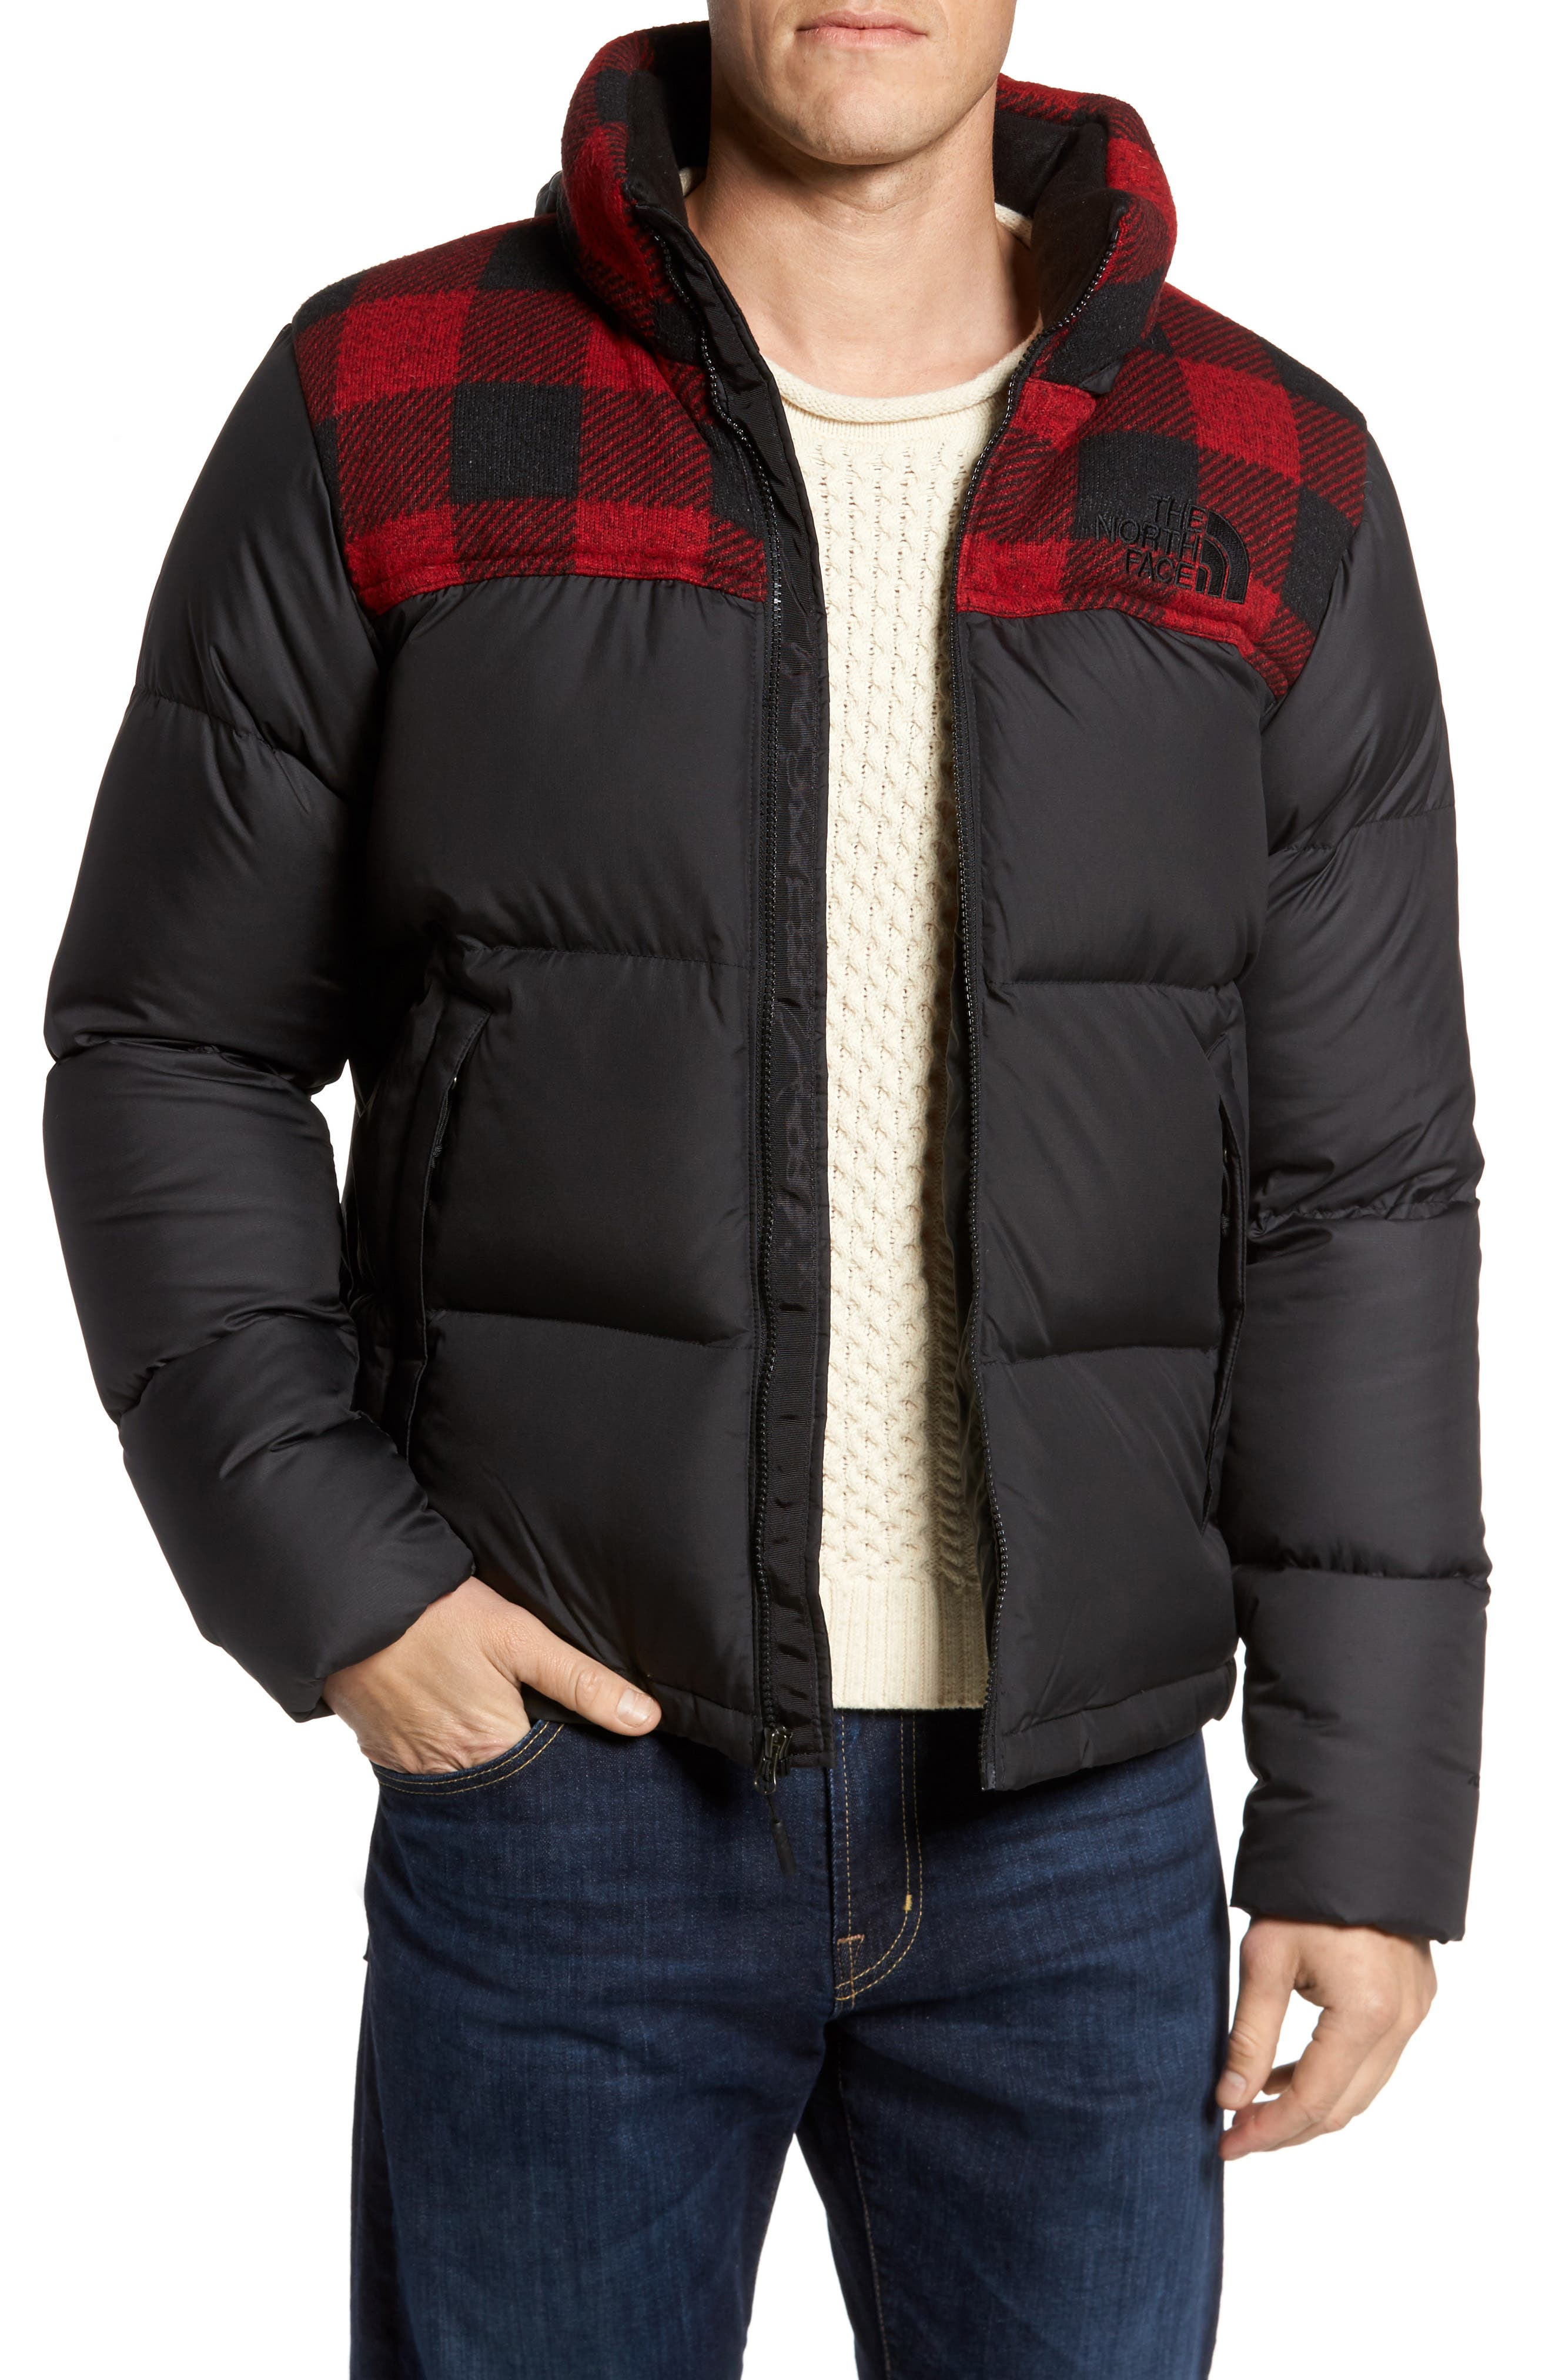 Mixed Media Jacket,                         Main,                         color, Black/ Cardinal Red Grizzly